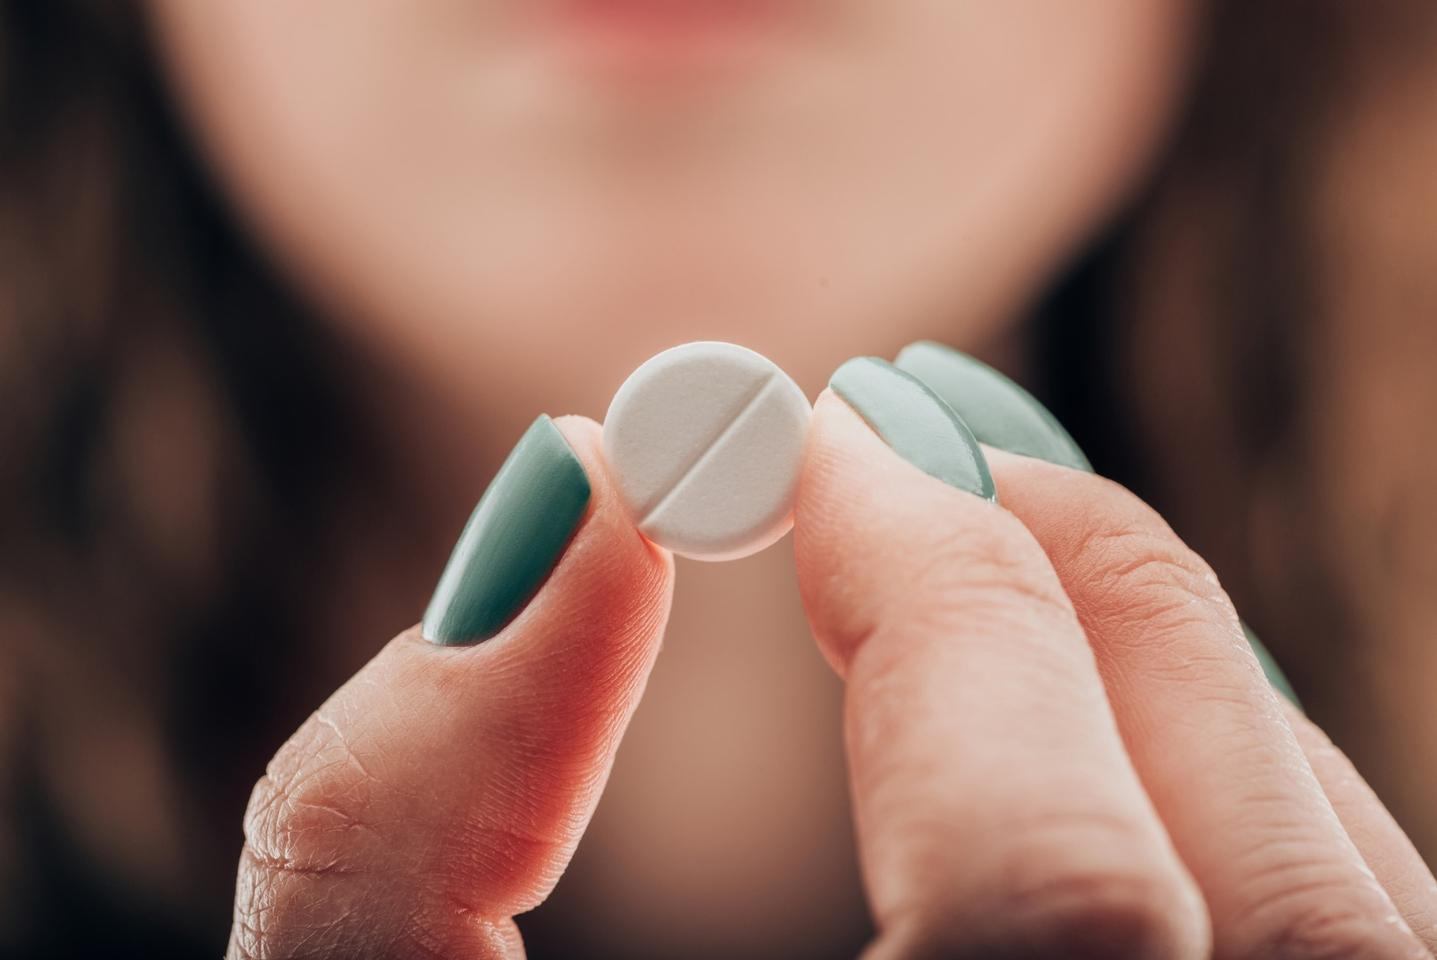 The study concludes the bleeding risks associated with taking aspirin outweigh any potential cardiovascular benefits in people that are generally healthy